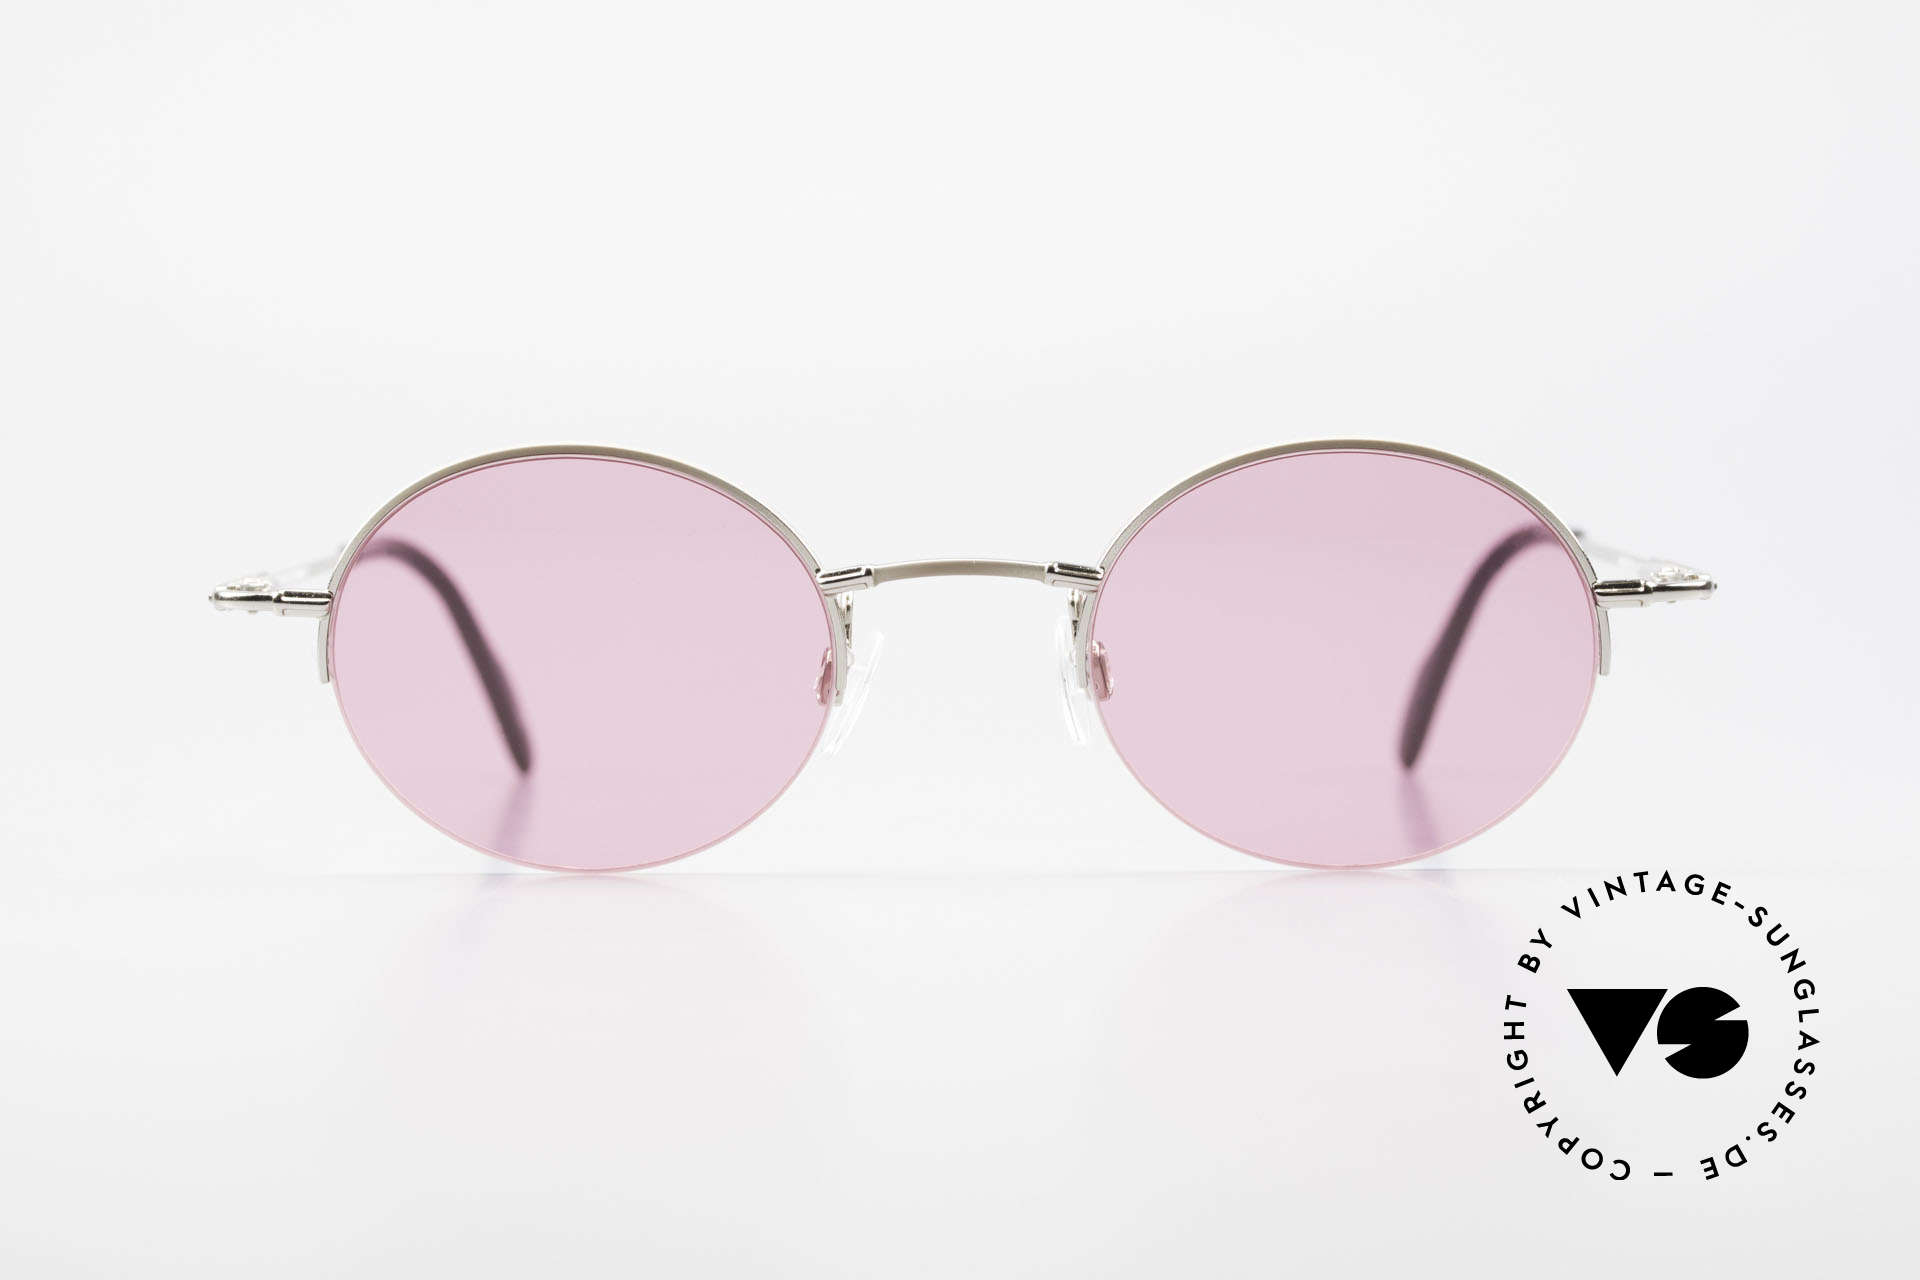 Longines 4363 Pink Sunglasses Oval Round, quality frame (half rim) with small design features, Made for Men and Women